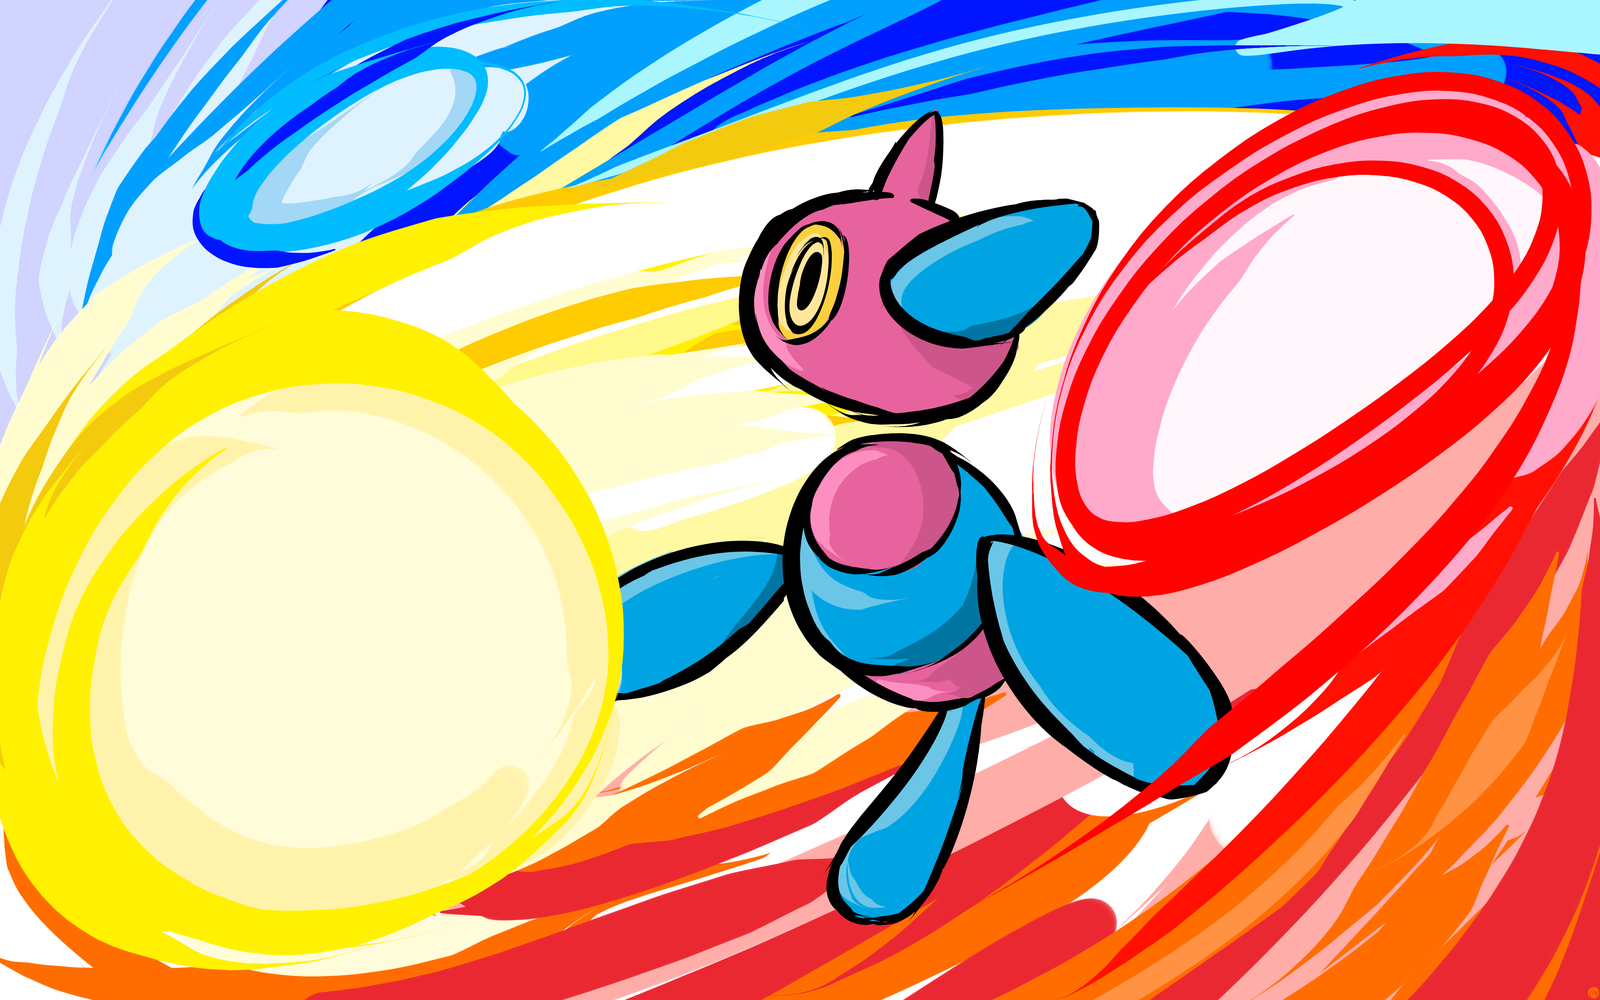 Porygon-Z | Tri-Attack by ishmam.deviantart.com on @DeviantArt